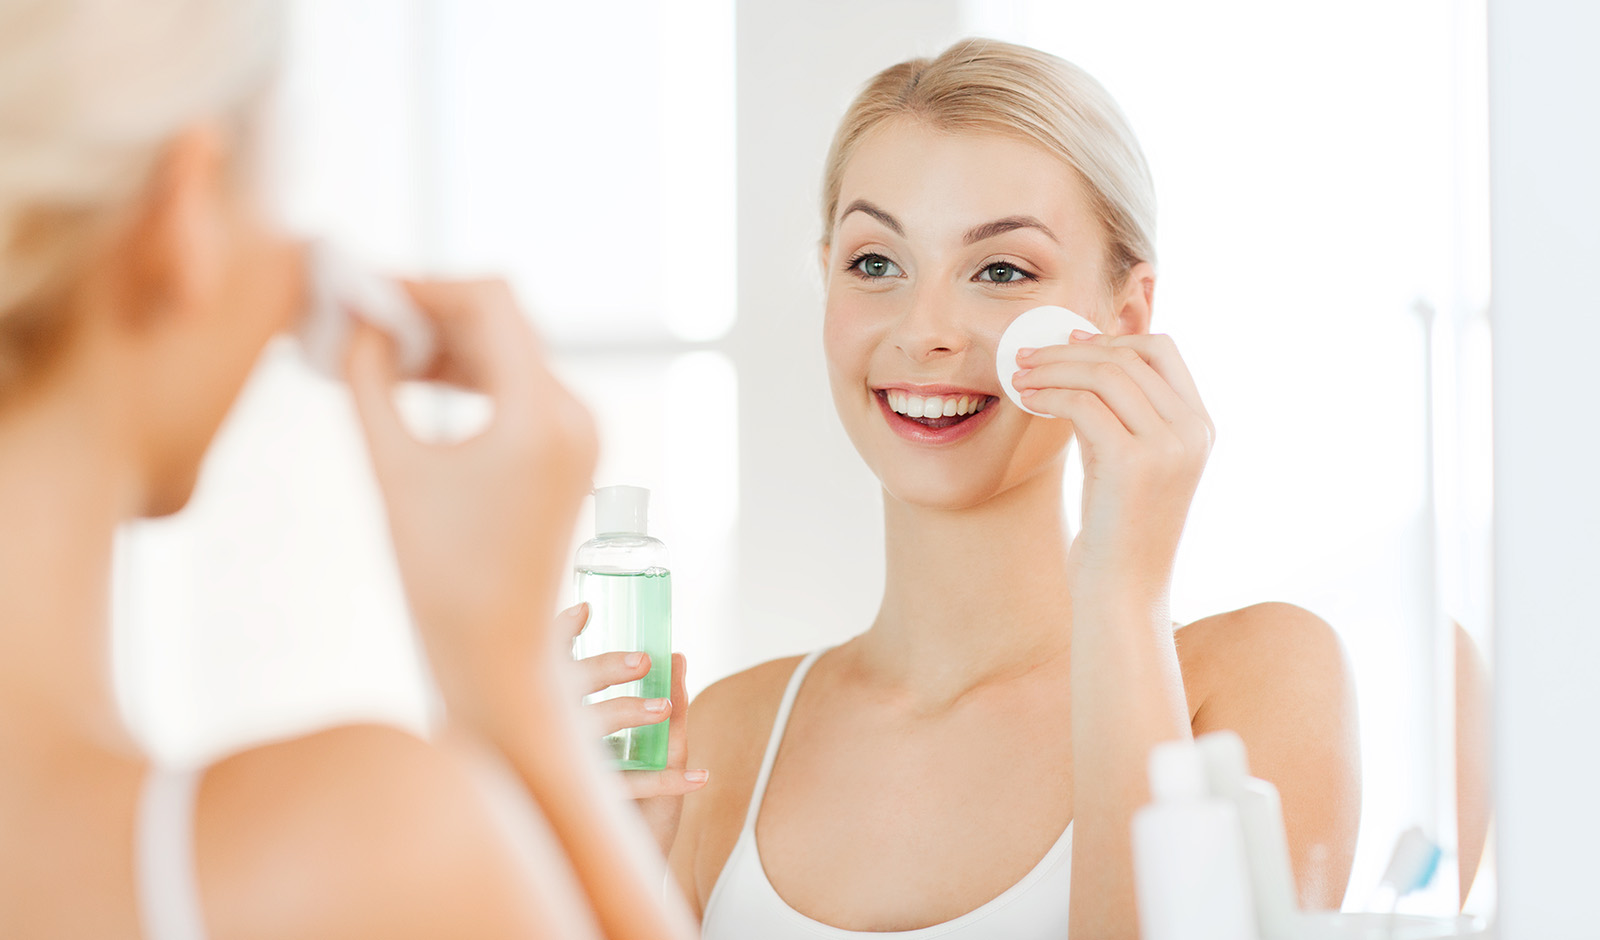 hyaluronic-acid-the-ingredient-you're-missing-in-your-skincare-main-image-woman-applying-product-to-skin